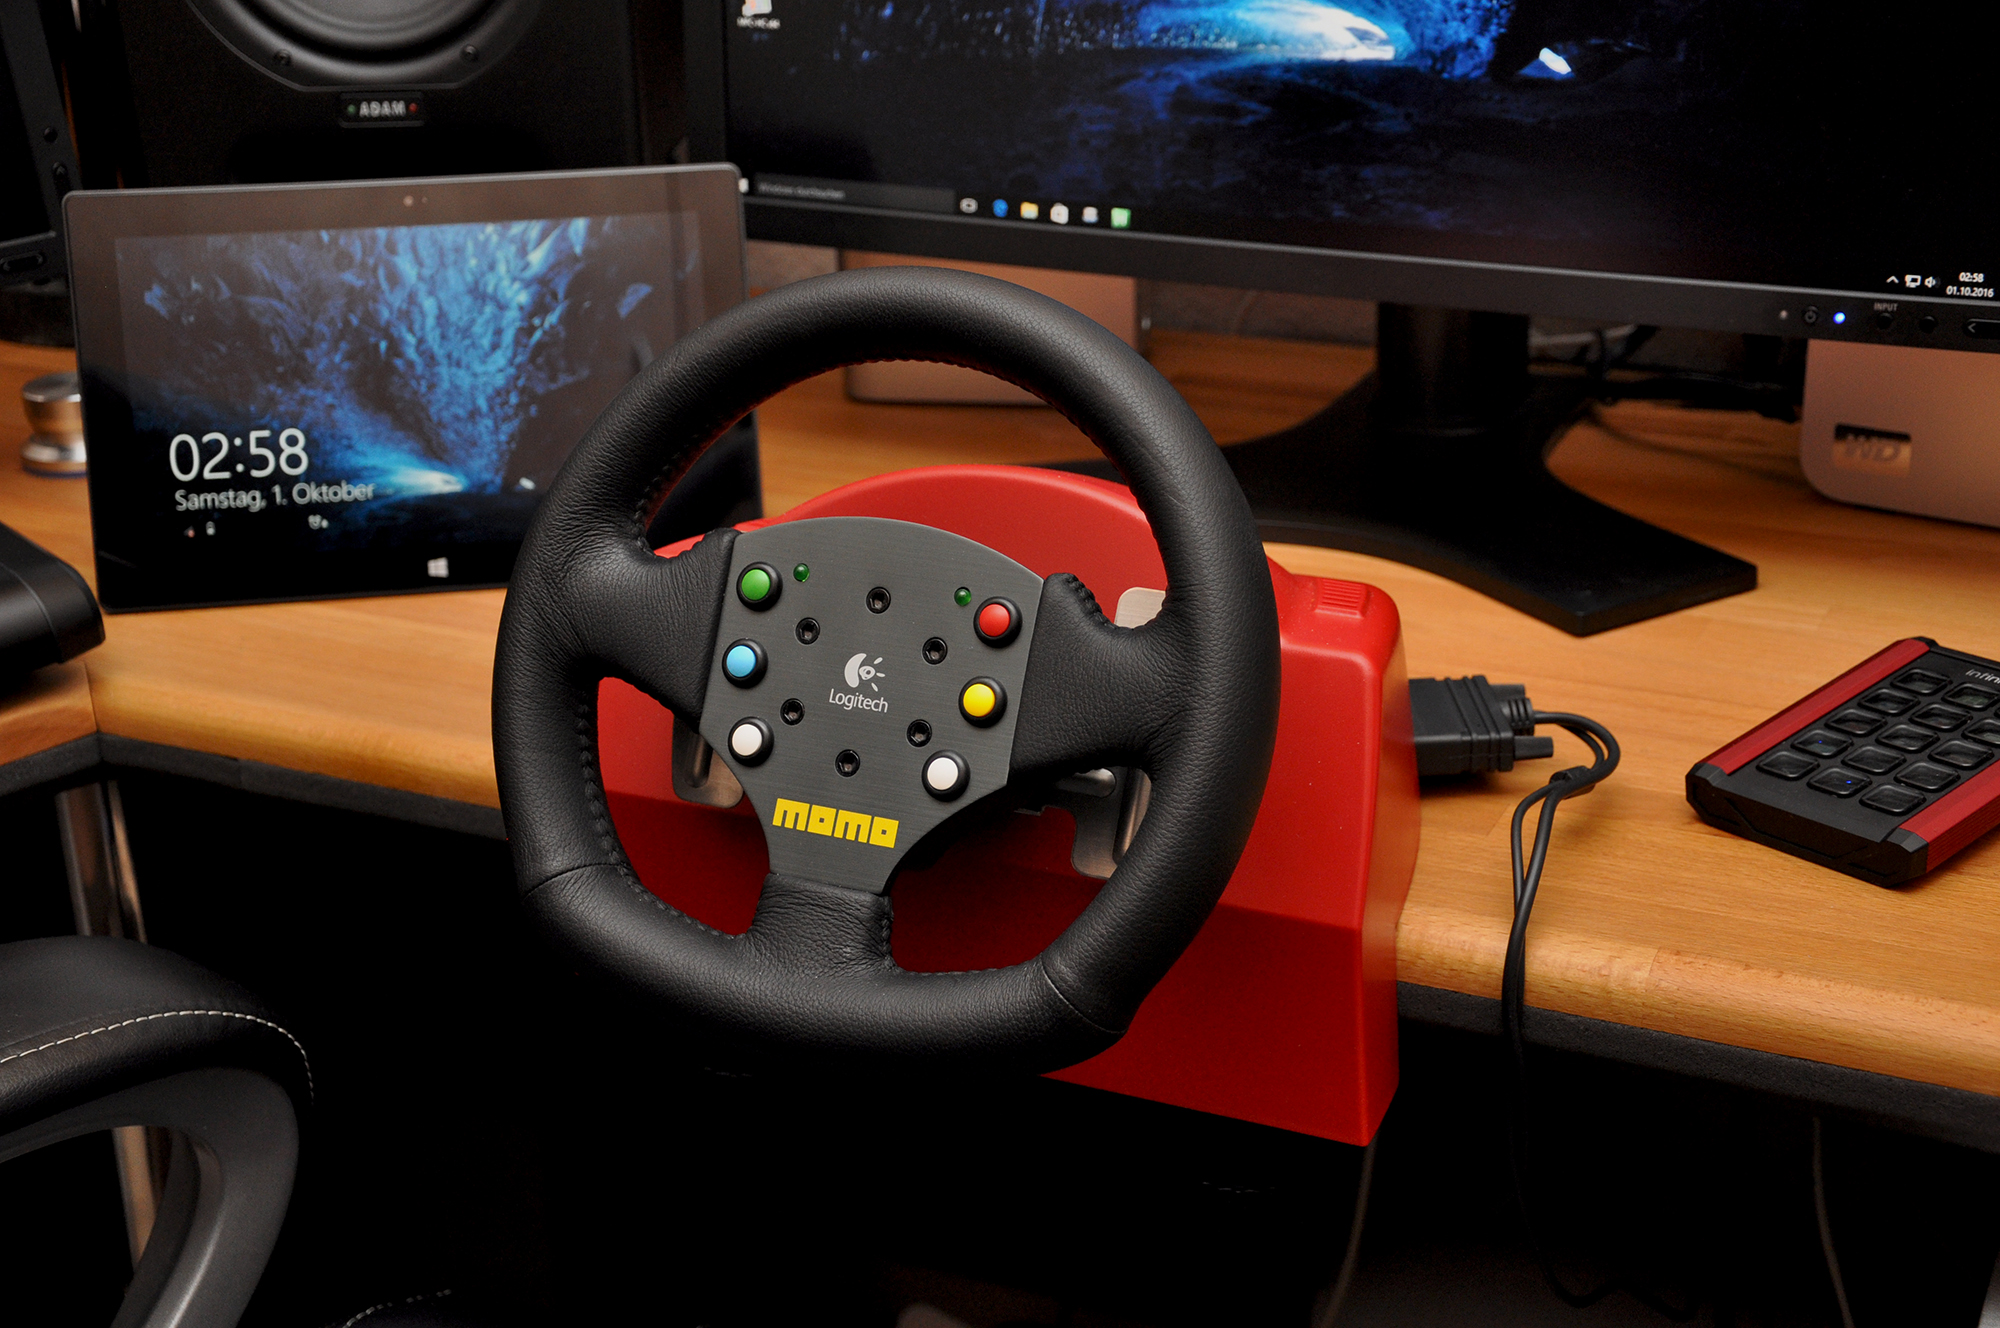 eac0d7cdc4d Please support Logitech MOMO® Force - Red Limited Edition because it's a  nice steering wheel.